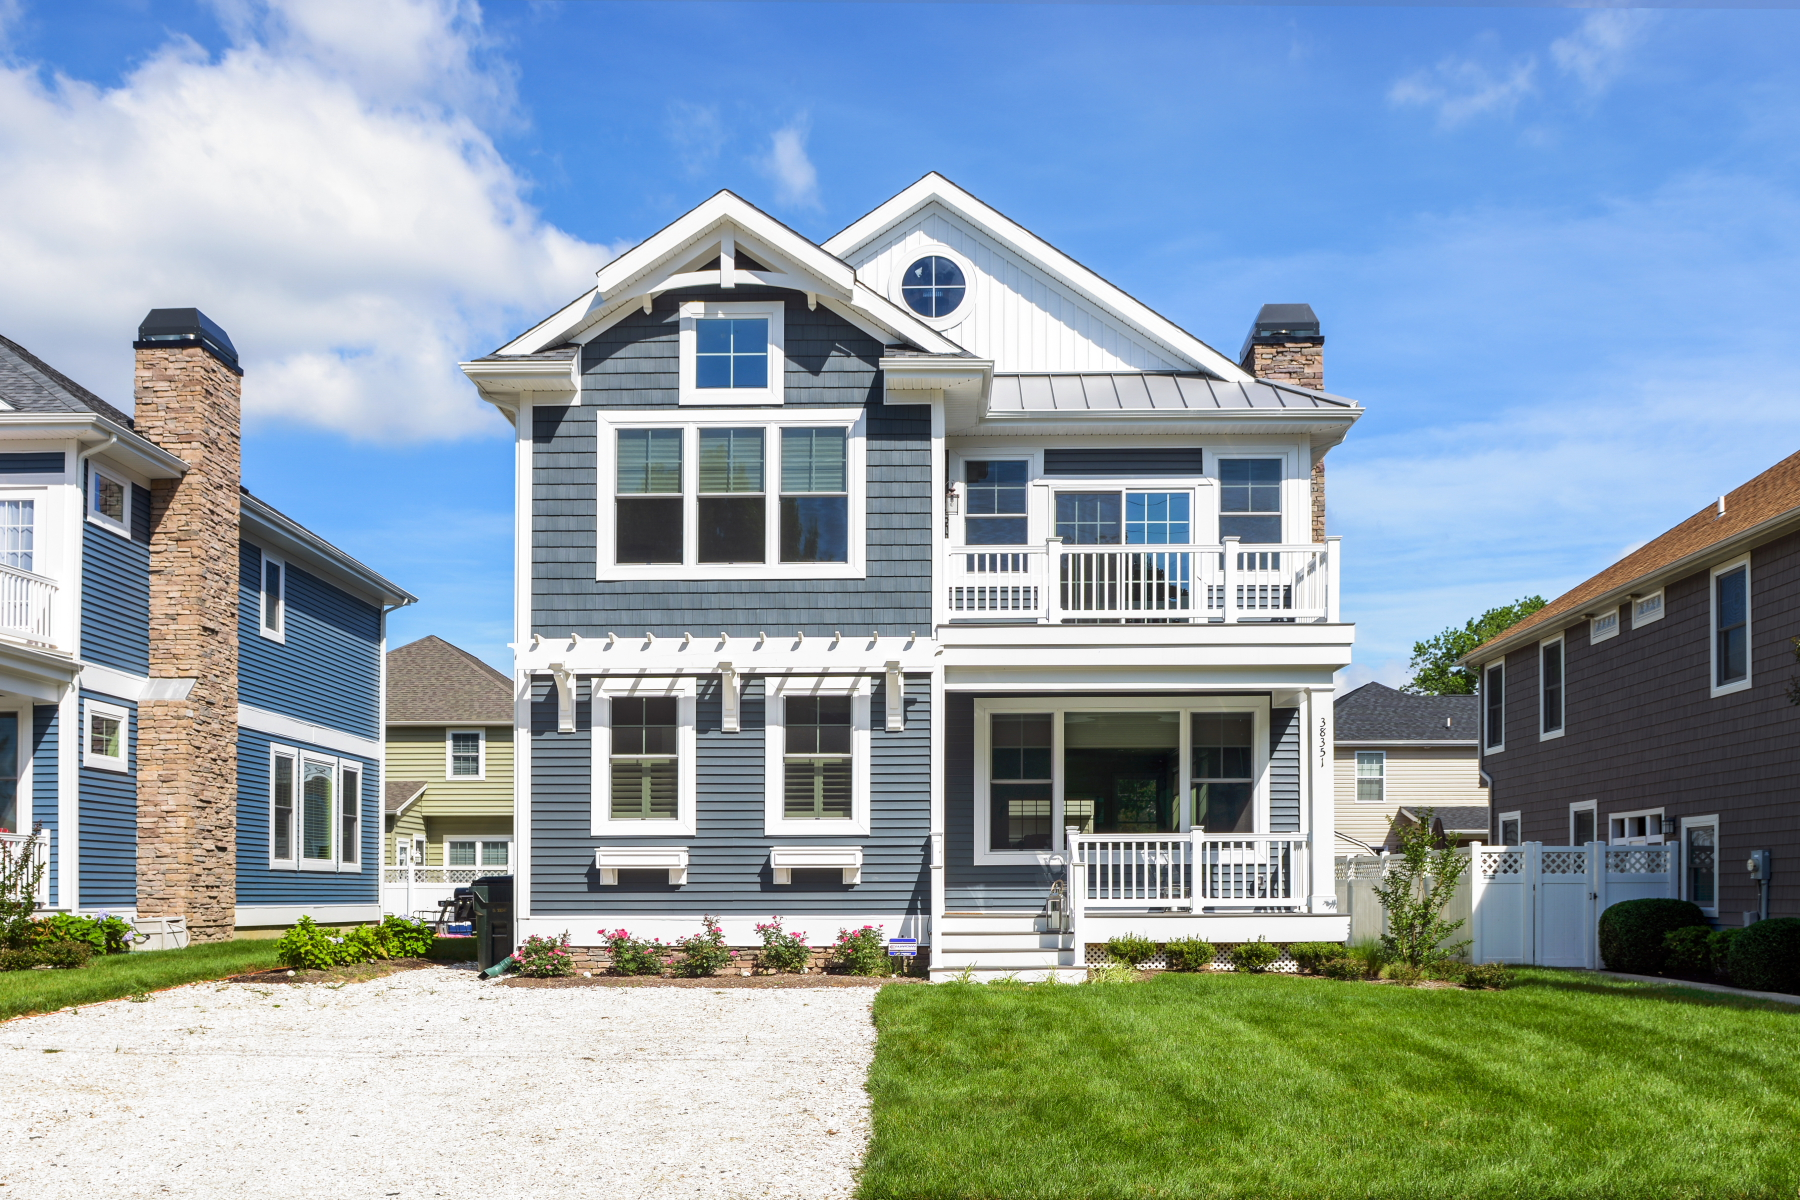 sales property at 206 Stockley , Rehoboth Beach, DE 19971